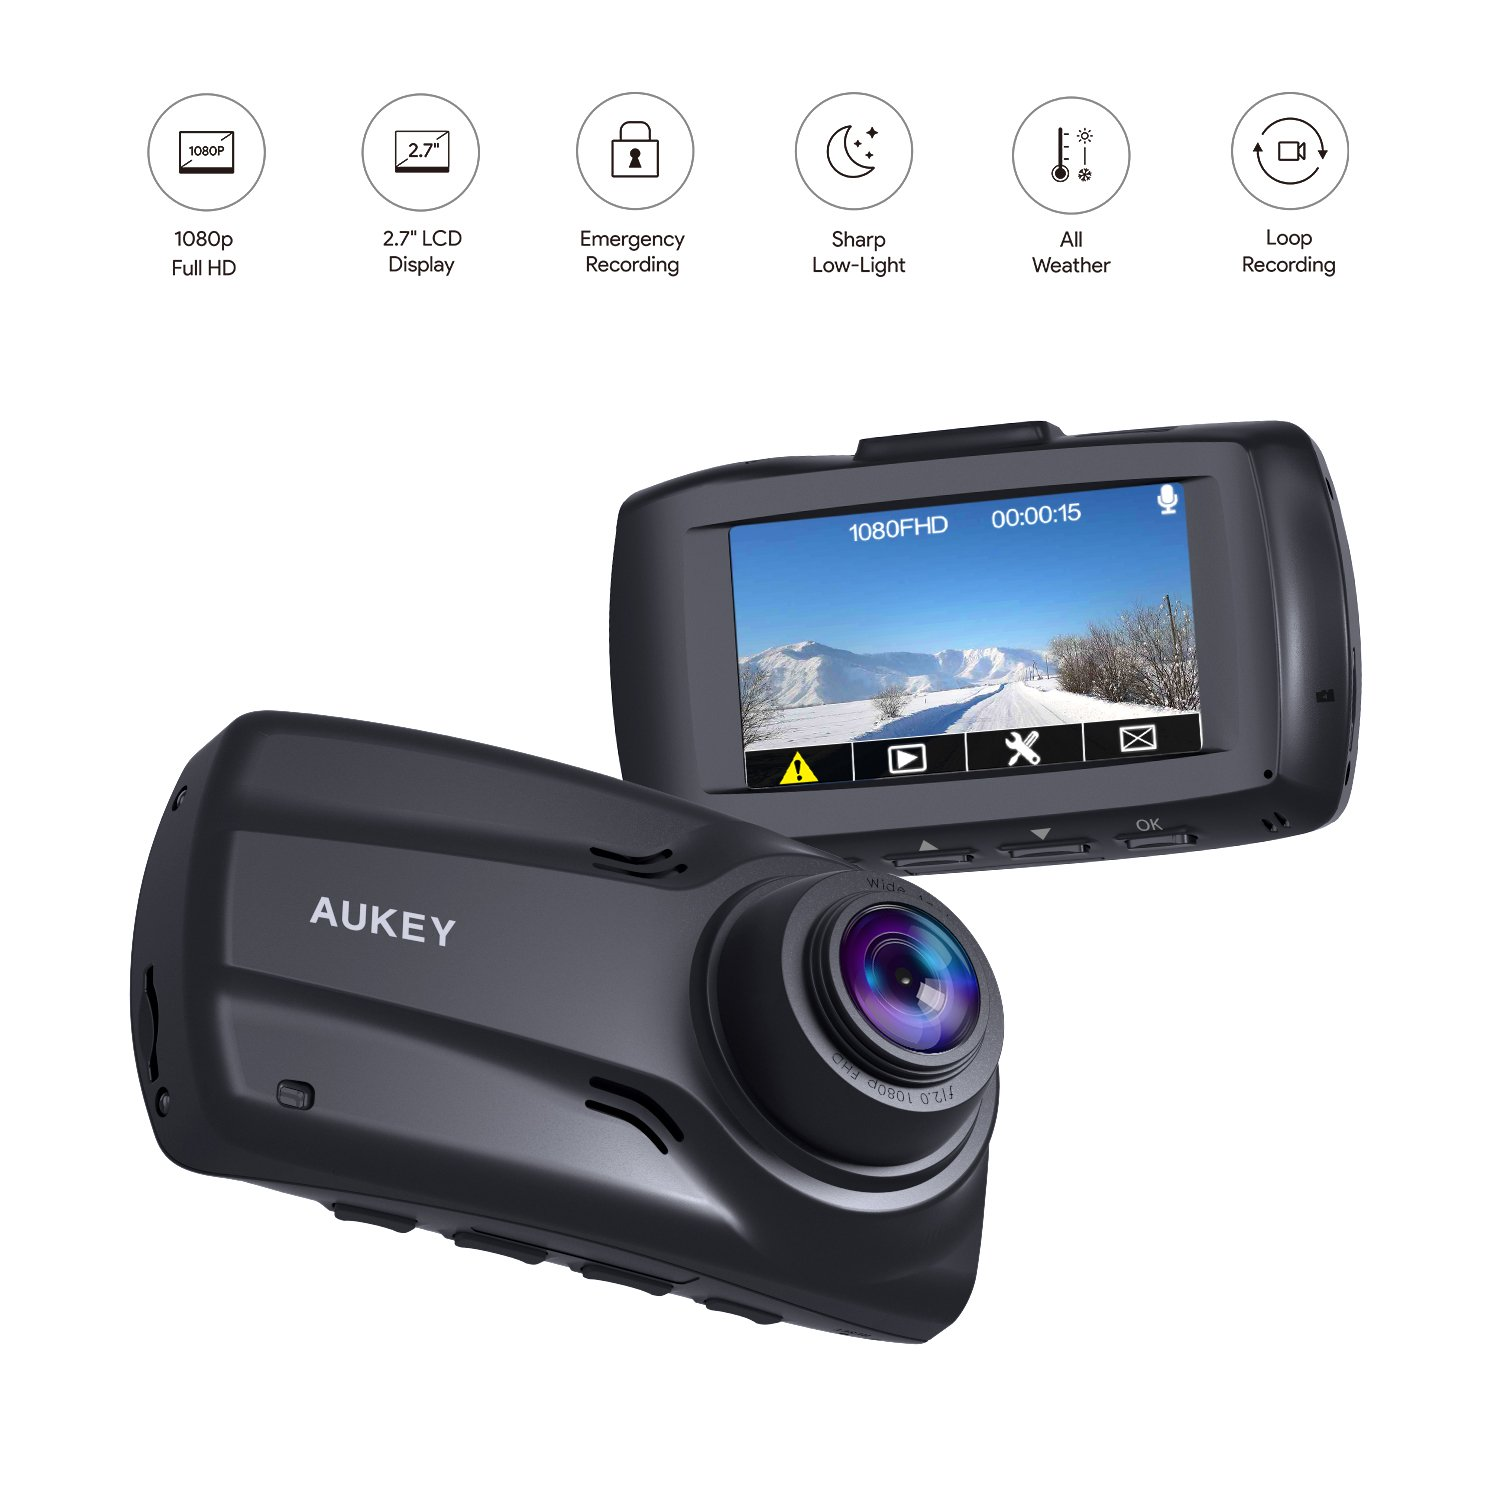 """AUKEY 1080p Dual Dash Cams with 2.7"""" Screen, Full HD Front and Rear Camera, 6-Lane 170° Wide-Angle Lens, G-Sensor, and Dual-Port Car Charger by AUKEY (Image #2)"""